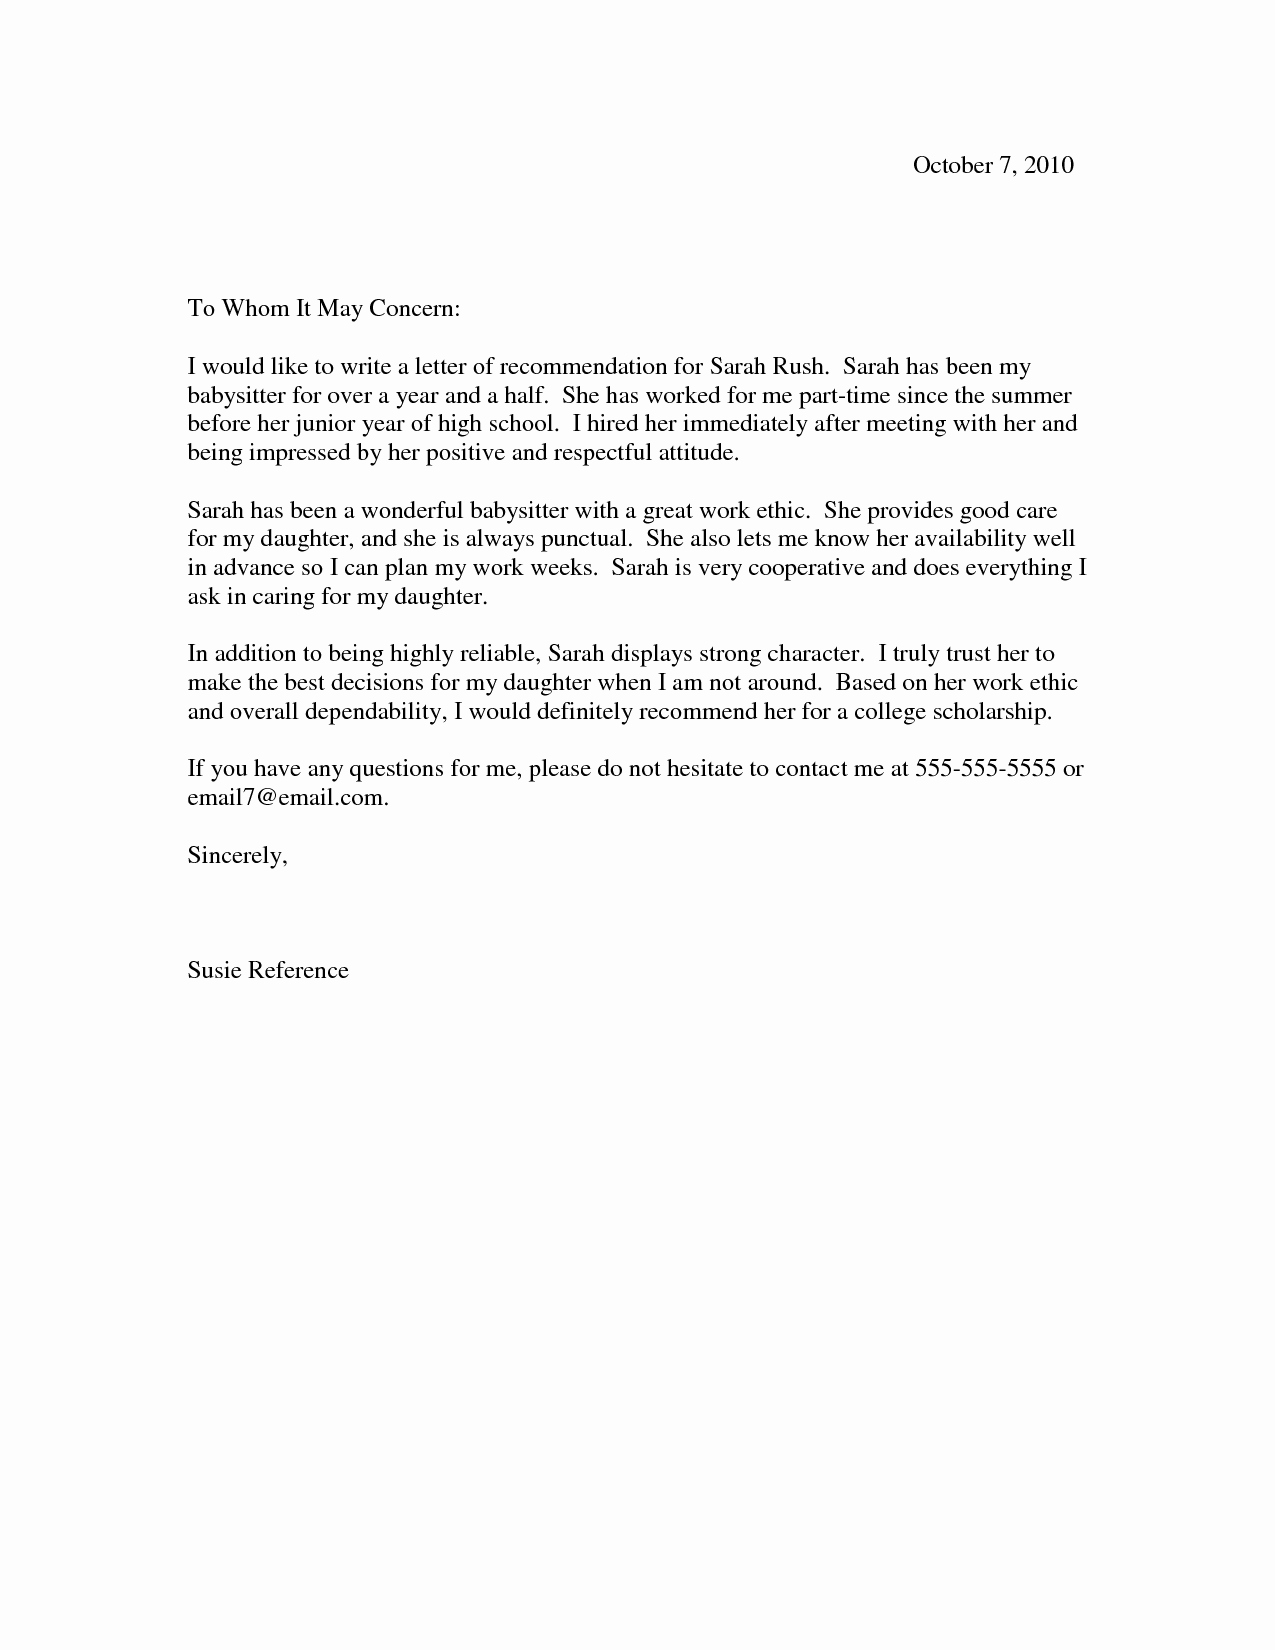 Scholarship Letter Of Recommendation Template Lovely Scholarship Re Mendation Letter Scholarship